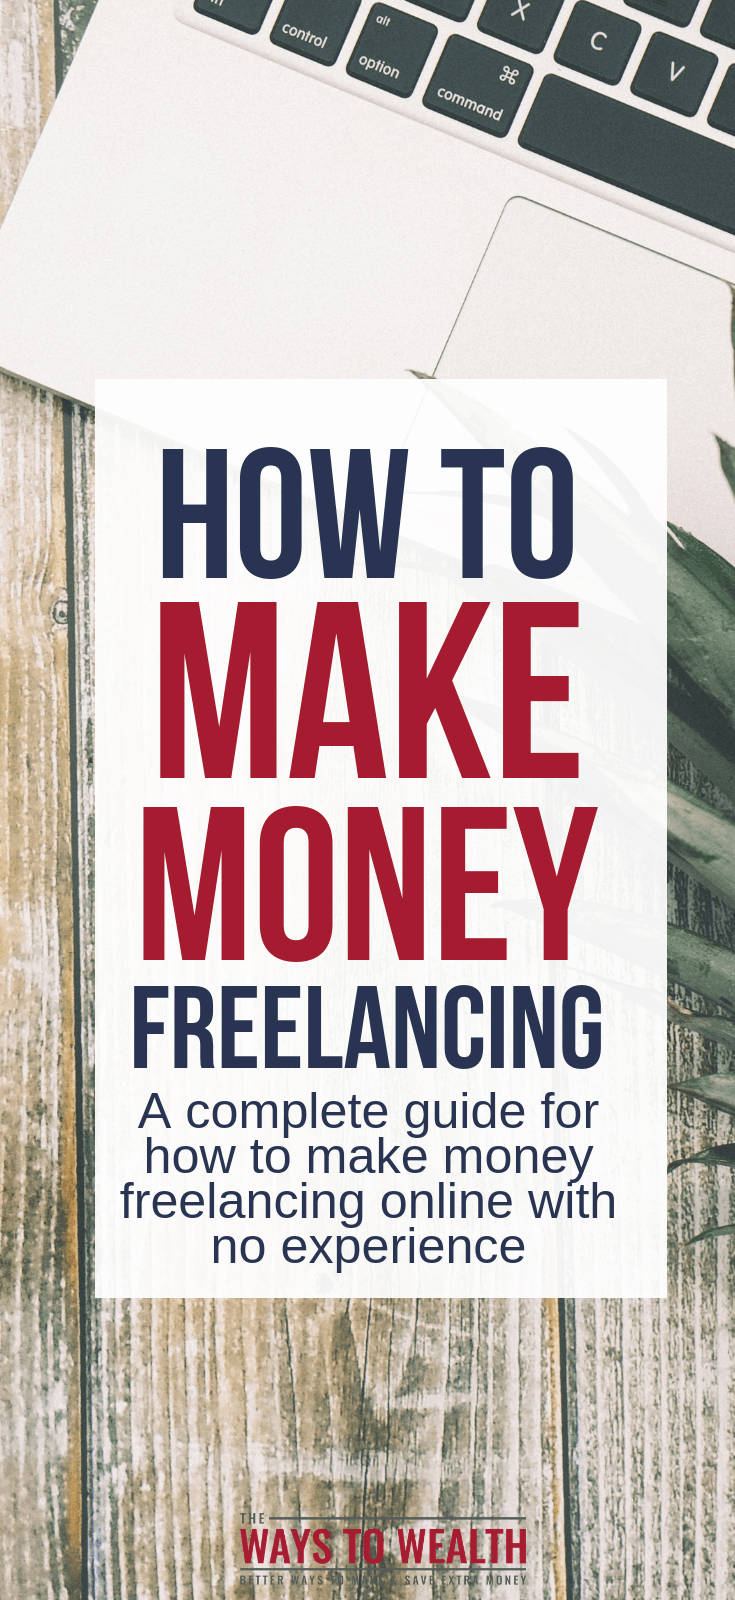 How To Start Freelancing Online. The complete guide on how to start freelancing online. This expert-written guide covers the essentials to becoming a successful freelancer.